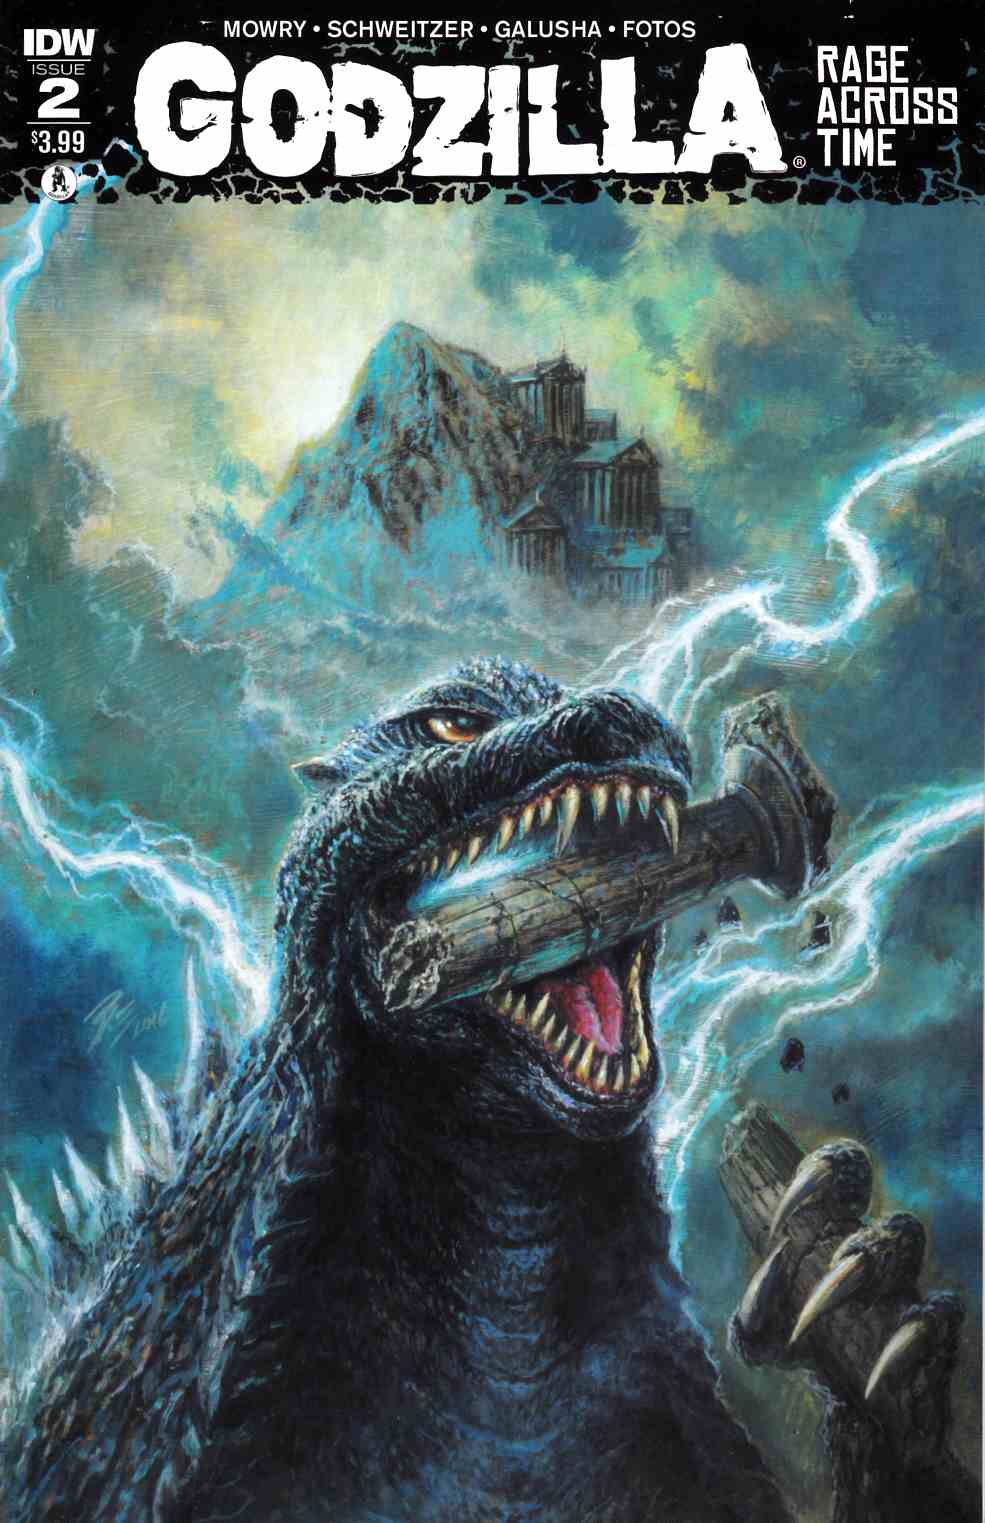 Godzilla Rage Across Time #2 [IDW Comic] LARGE